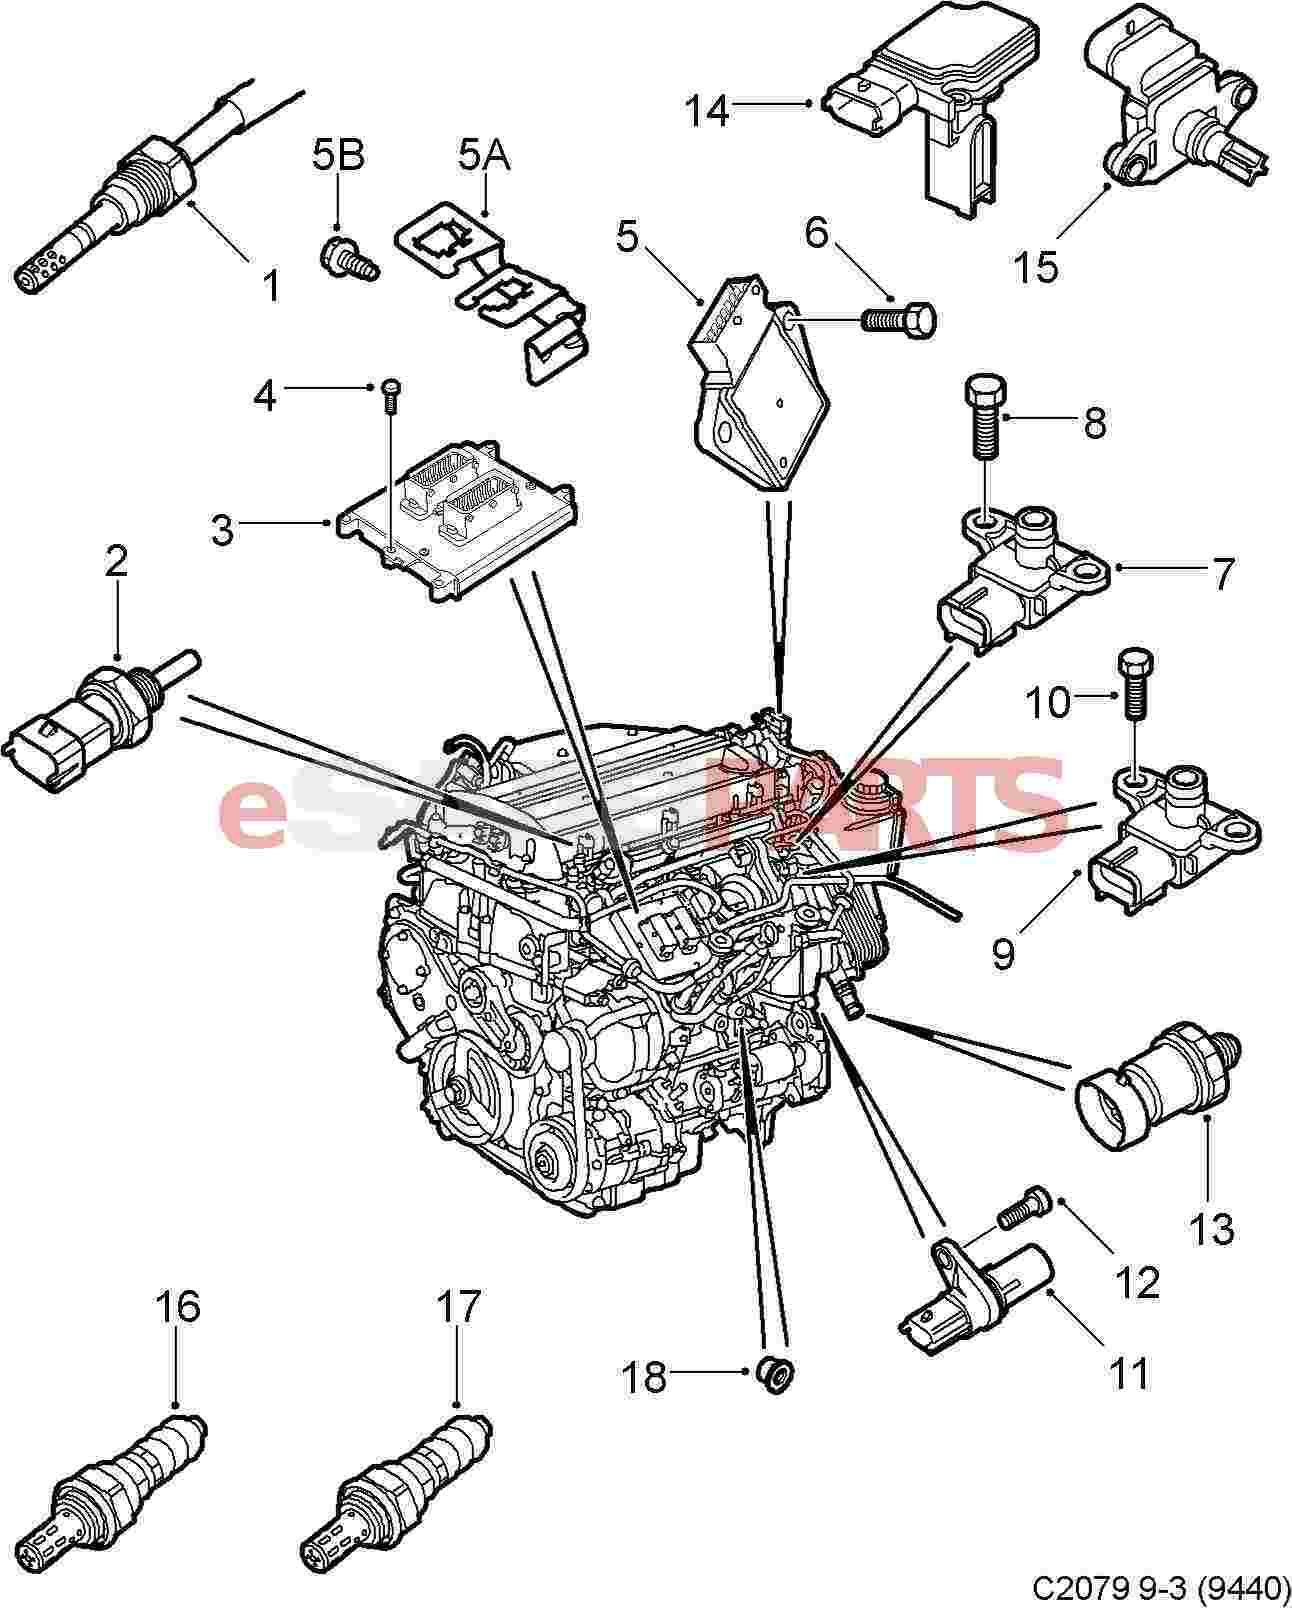 2004 saab 9 3 engine diagram wiring diagram data today2004 saab 9 3 engine diagram further 4l80e transmission on saab 2 0 2004 saab 9 3 engine diagram